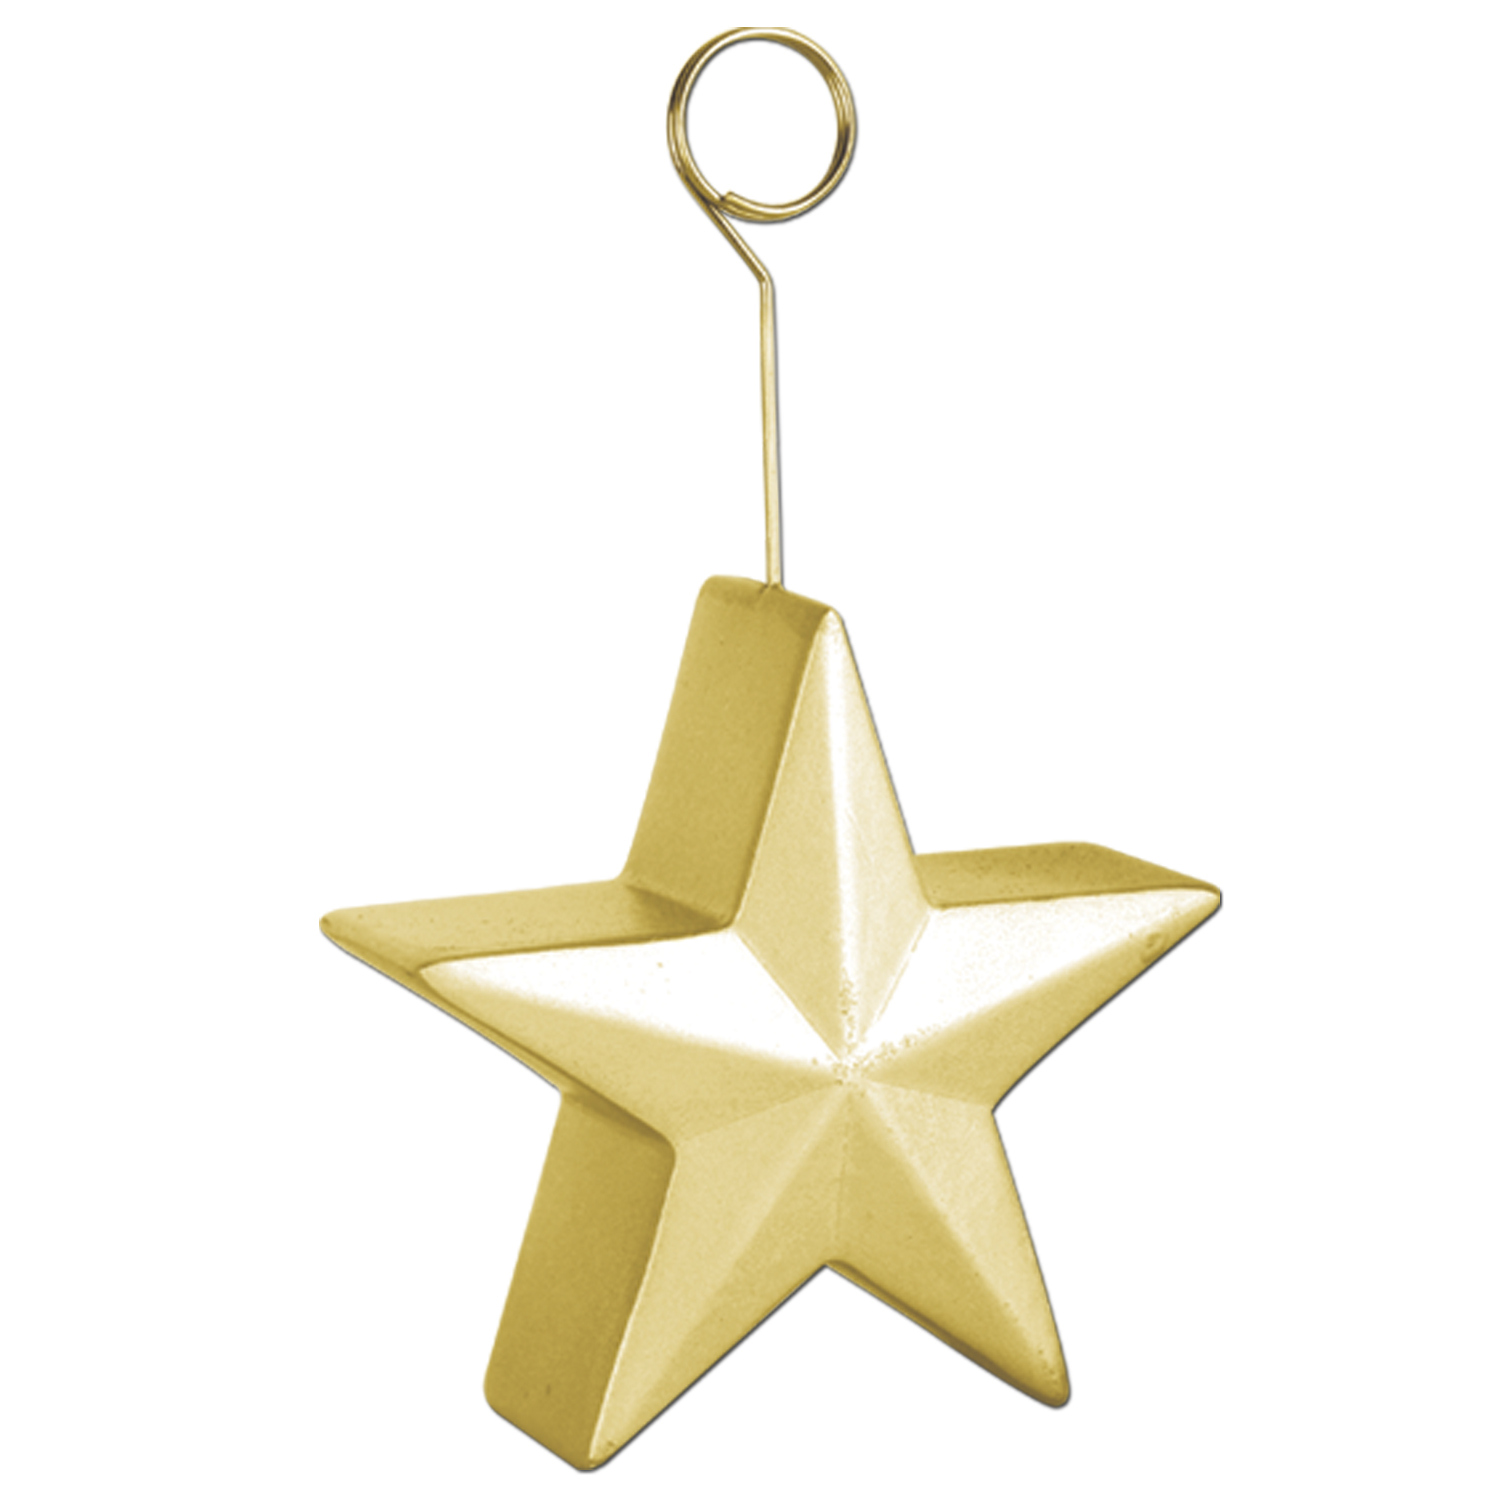 6oz Star Photo/Balloon Holders (Pack of 6) Star Photo Holder, Balloon Holder, Stars, Gold, New Years Eve, Holders, Balloon Weights, NYE, Black and gold decor, Birthday, Western, Wholesale party supplies, Inexpensive party decorations, Party goods, Cheap